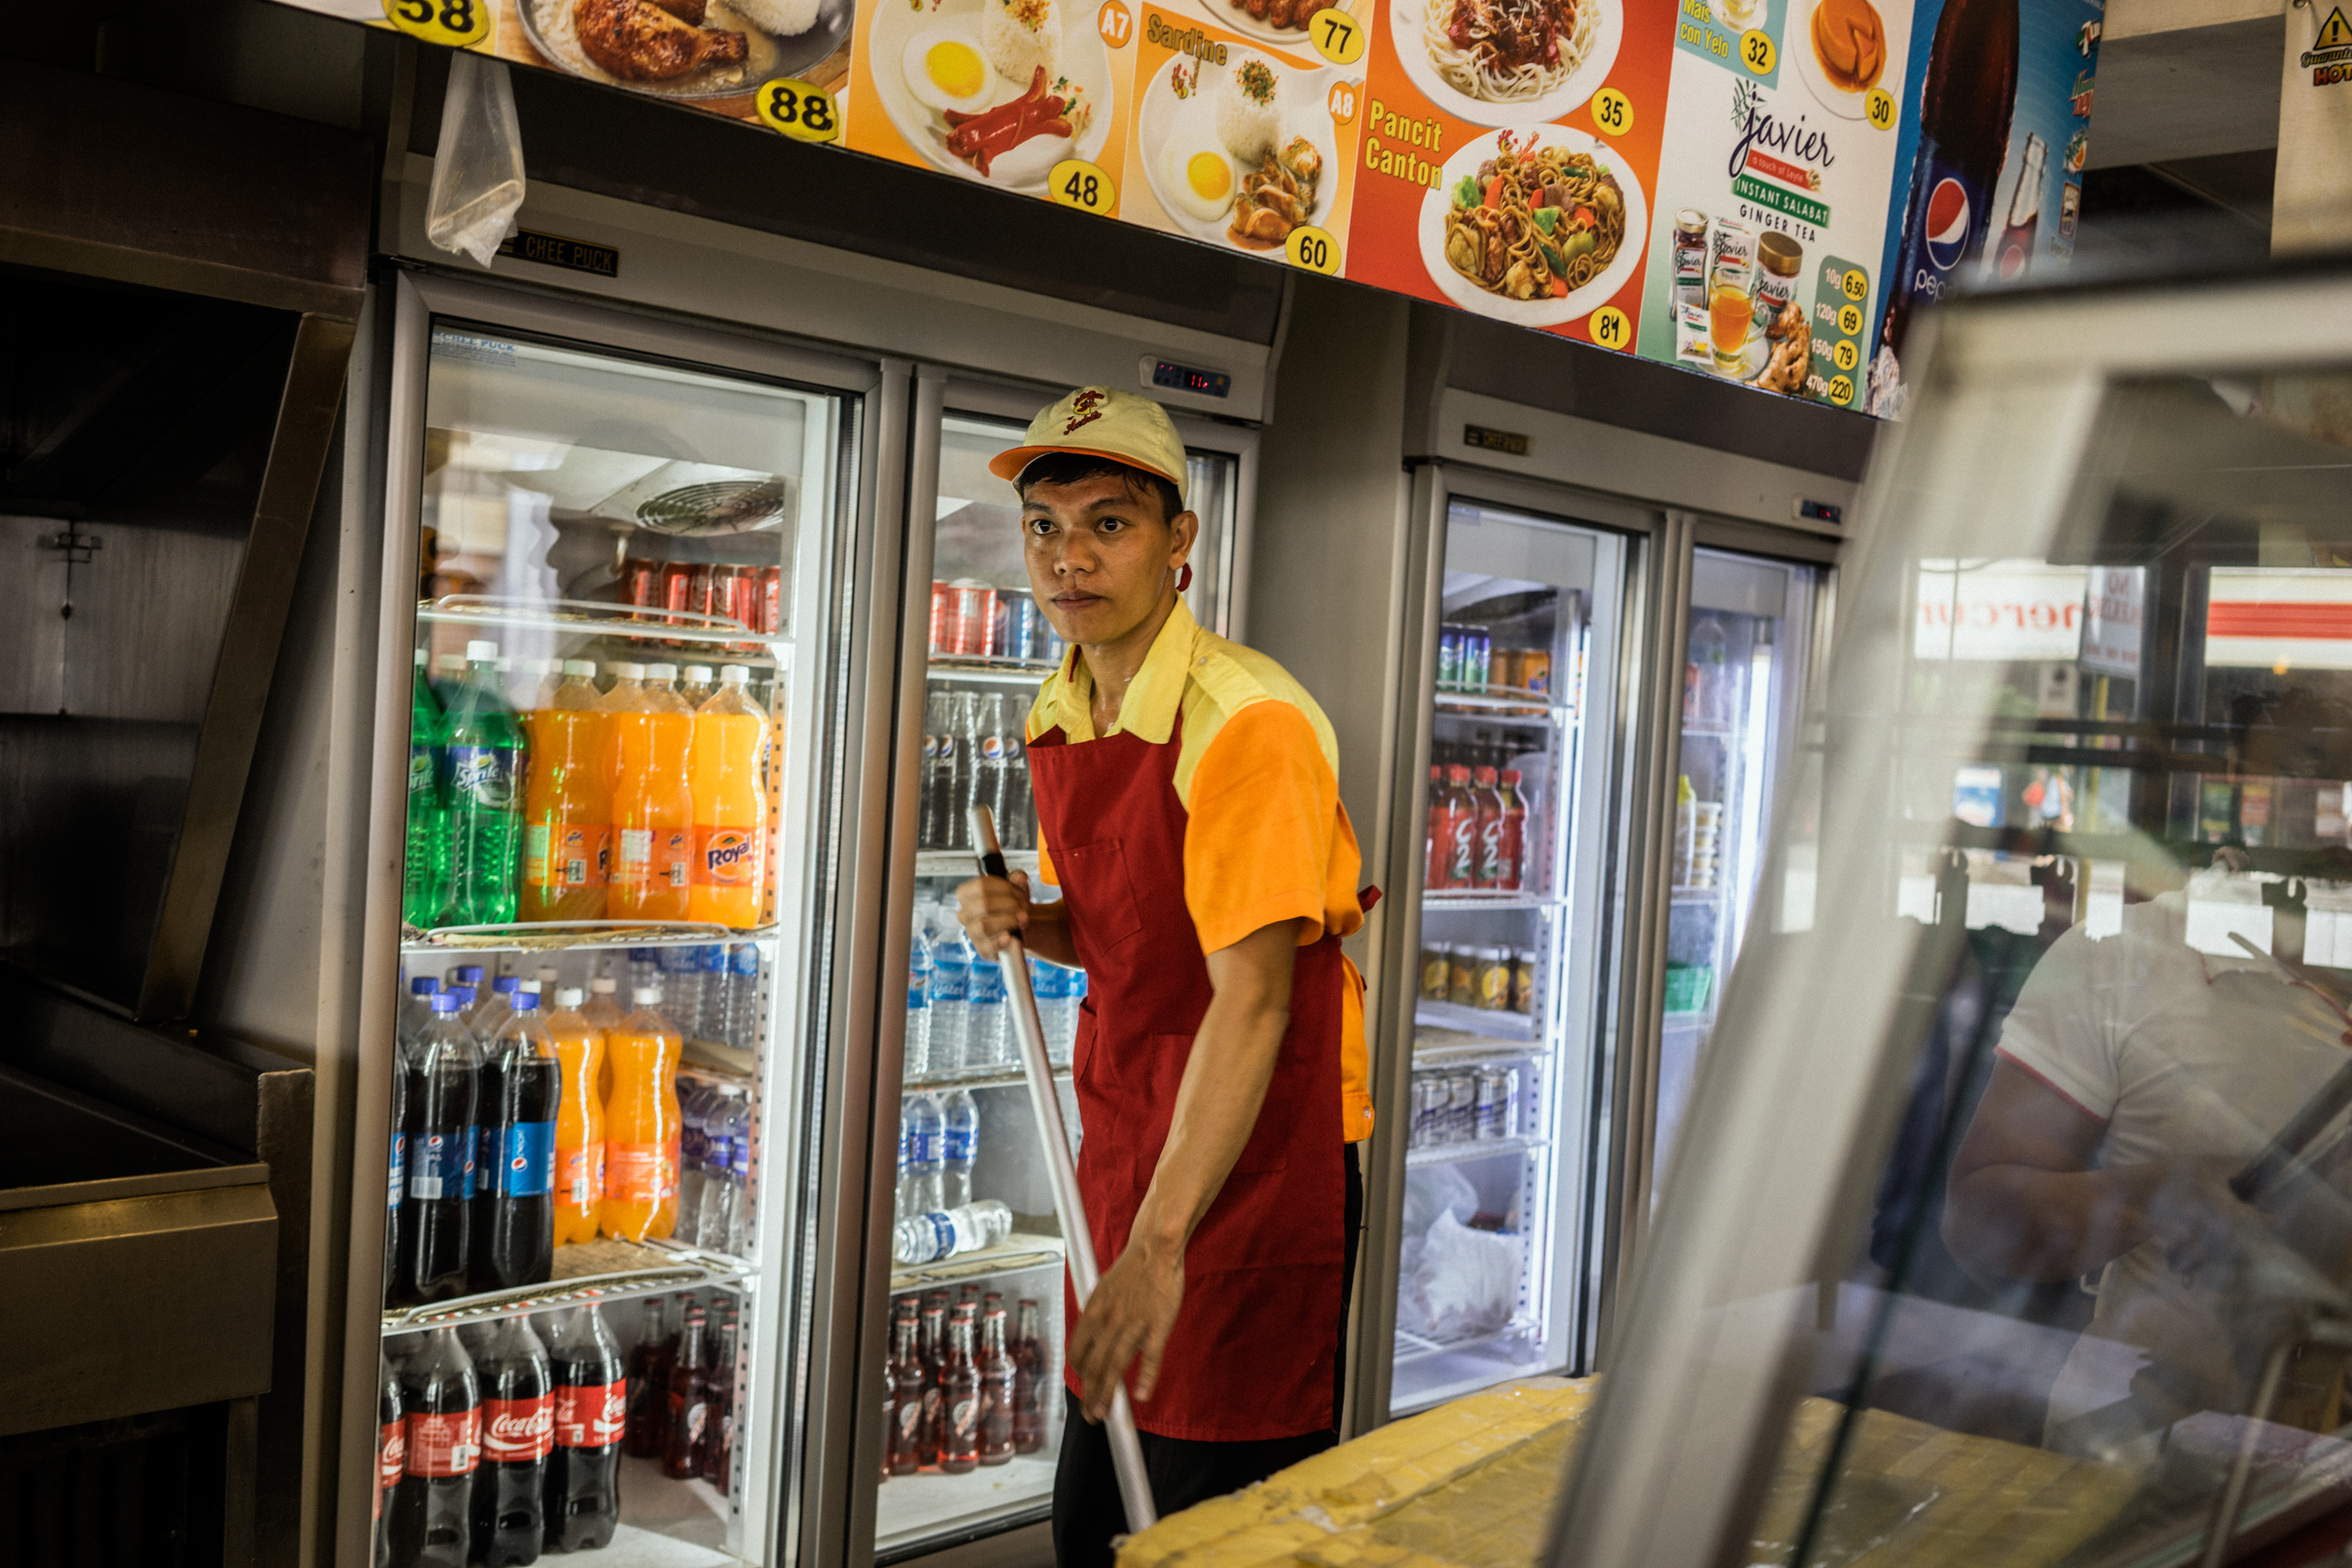 Kalibo, Philippines - September 20, 2015: Emmanuel Concepcion mops in the local fast food chain where he is currently employed after being repatriated from a fishing vessel. Emmanuel is a victim of a Singapore-based maritime manning agency that collected illegal placement fees from him, stationed him on a Taiwanese fishing vessel where he faced inhumane circumstances, and then failed to give him the salary he was promised. Hannah Reyes